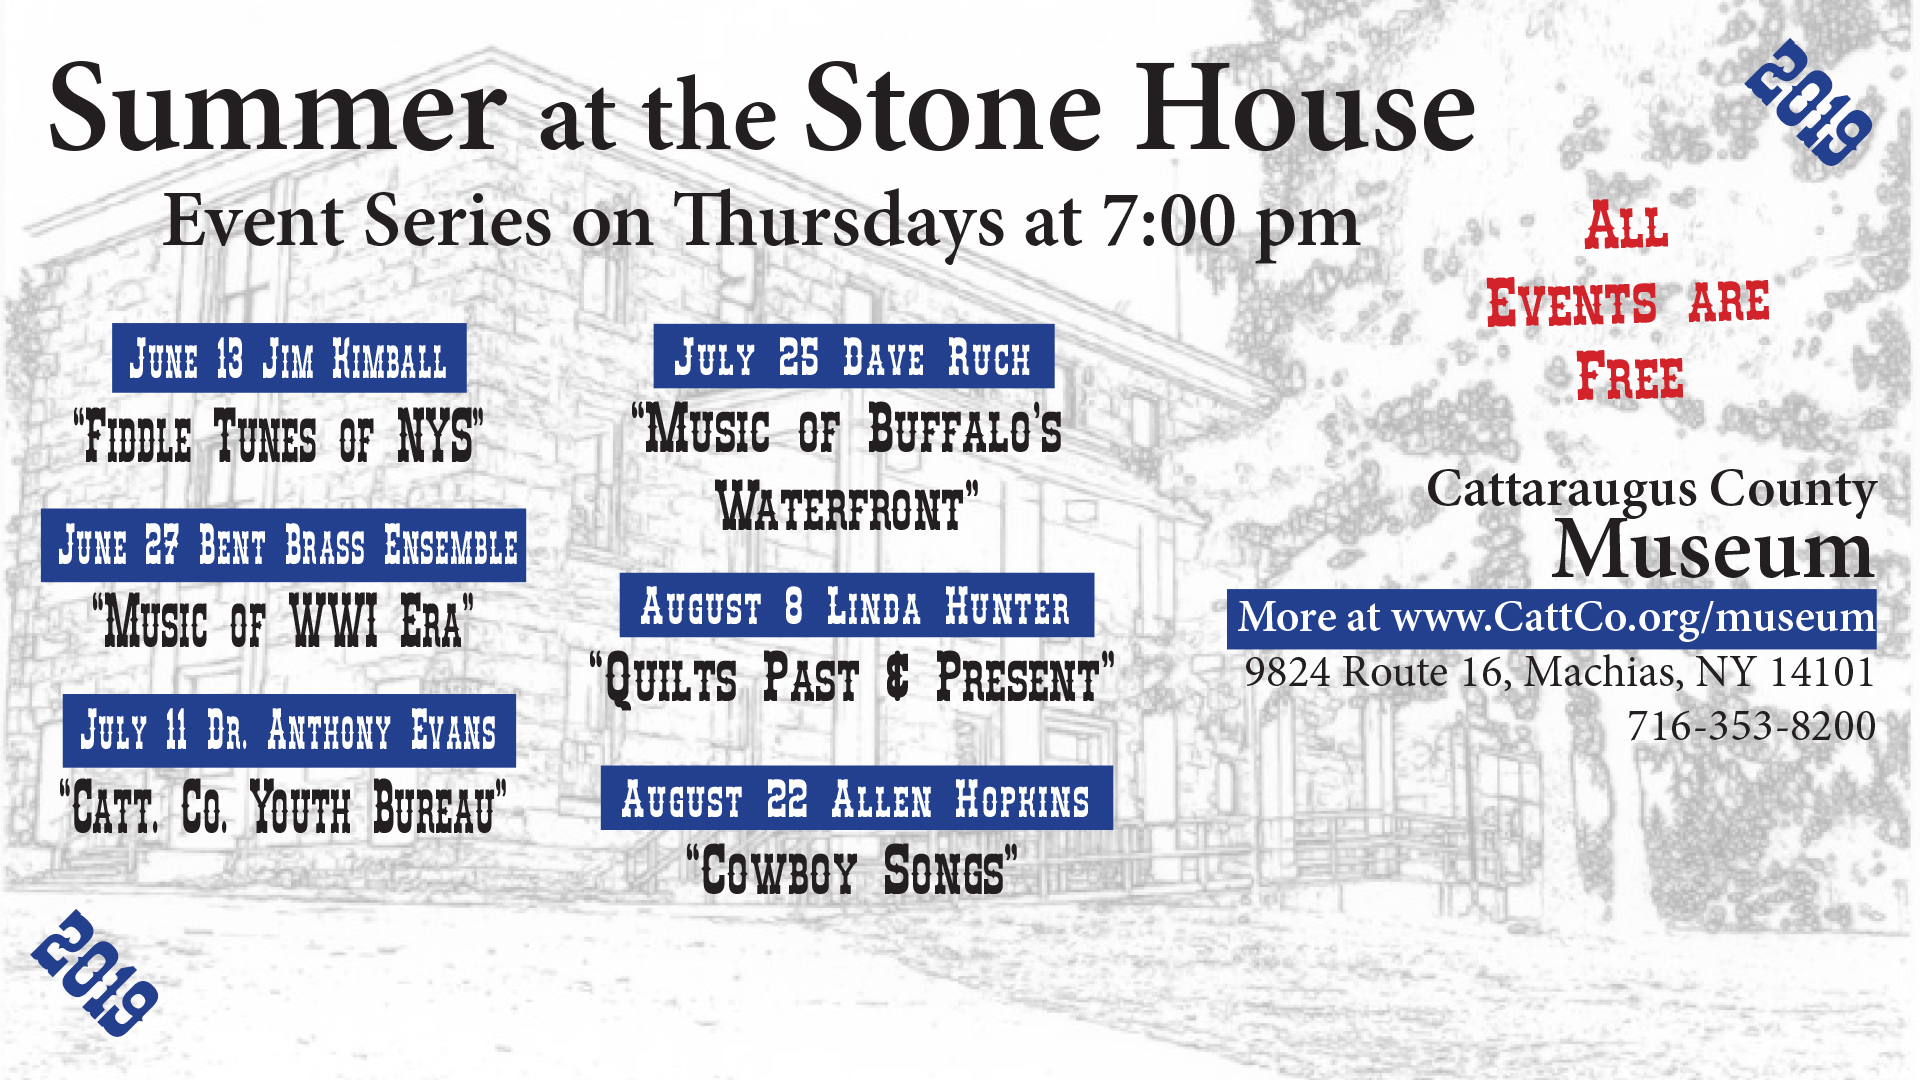 2019 Summer at the Stone House